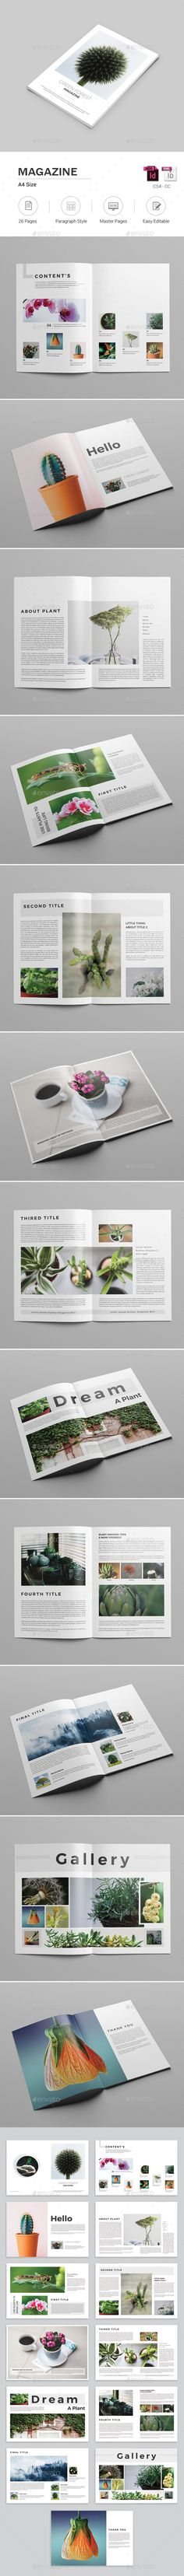 Magazine  — InDesign Template #inspiration #indesign magazine template #minimal • Download ➝ https://graphicriver.net/item/magazine/18599072?ref=pxcr